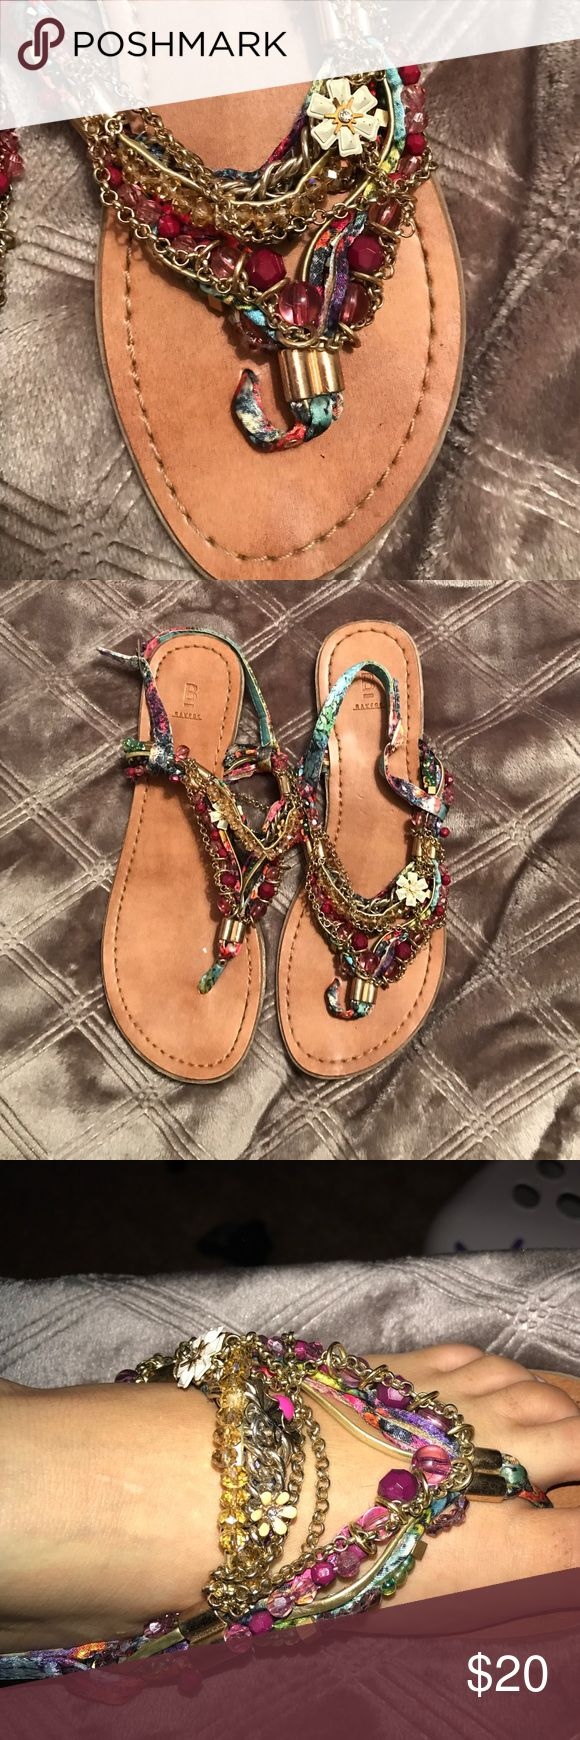 Beaded Bakers Sandals Colorful and bold Sandals featuring bead and gold chain designs Bakers Shoes Sandals